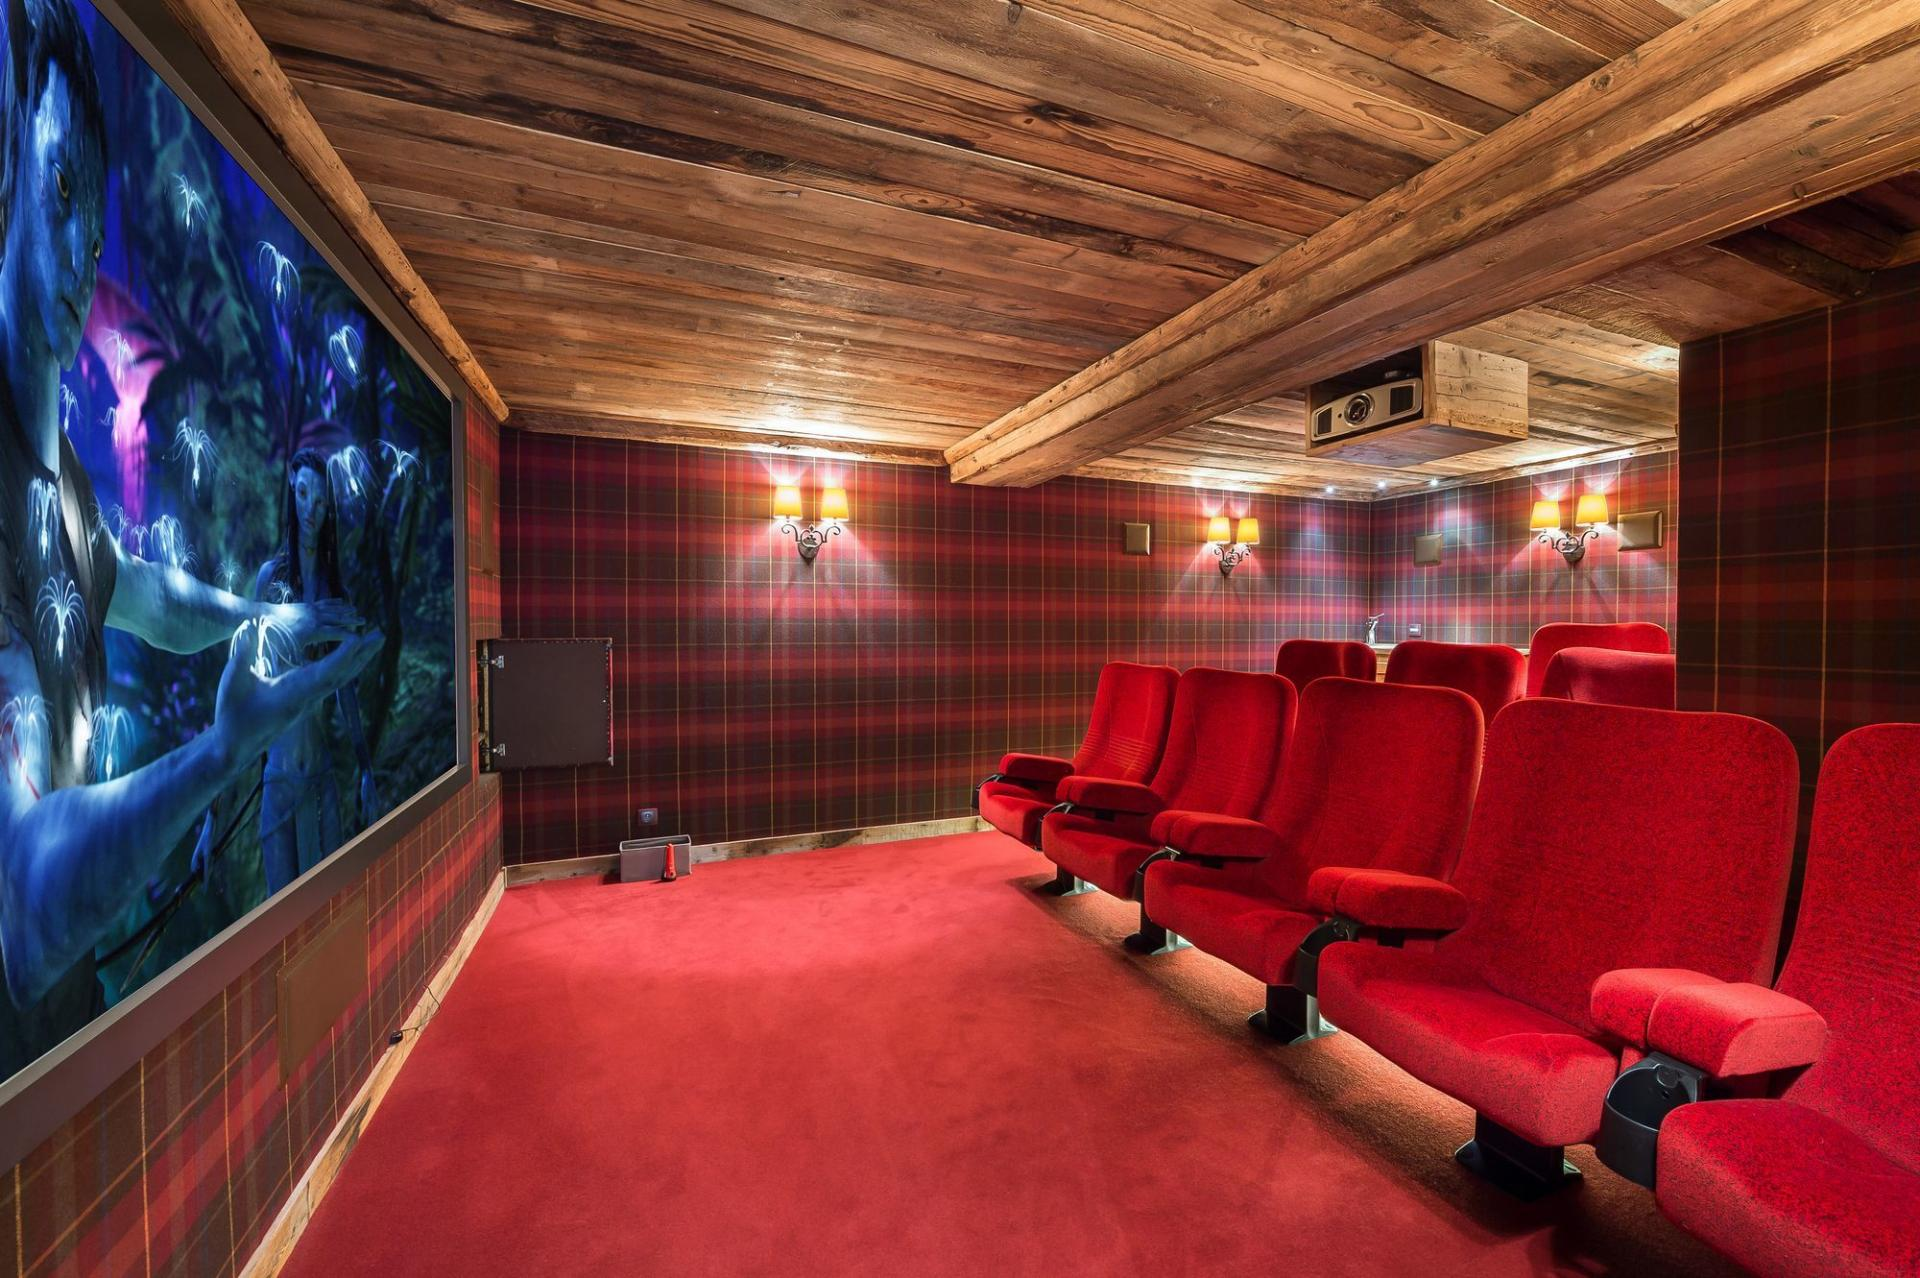 CHALET BELLECOTE AND ITS HOME CINEMA